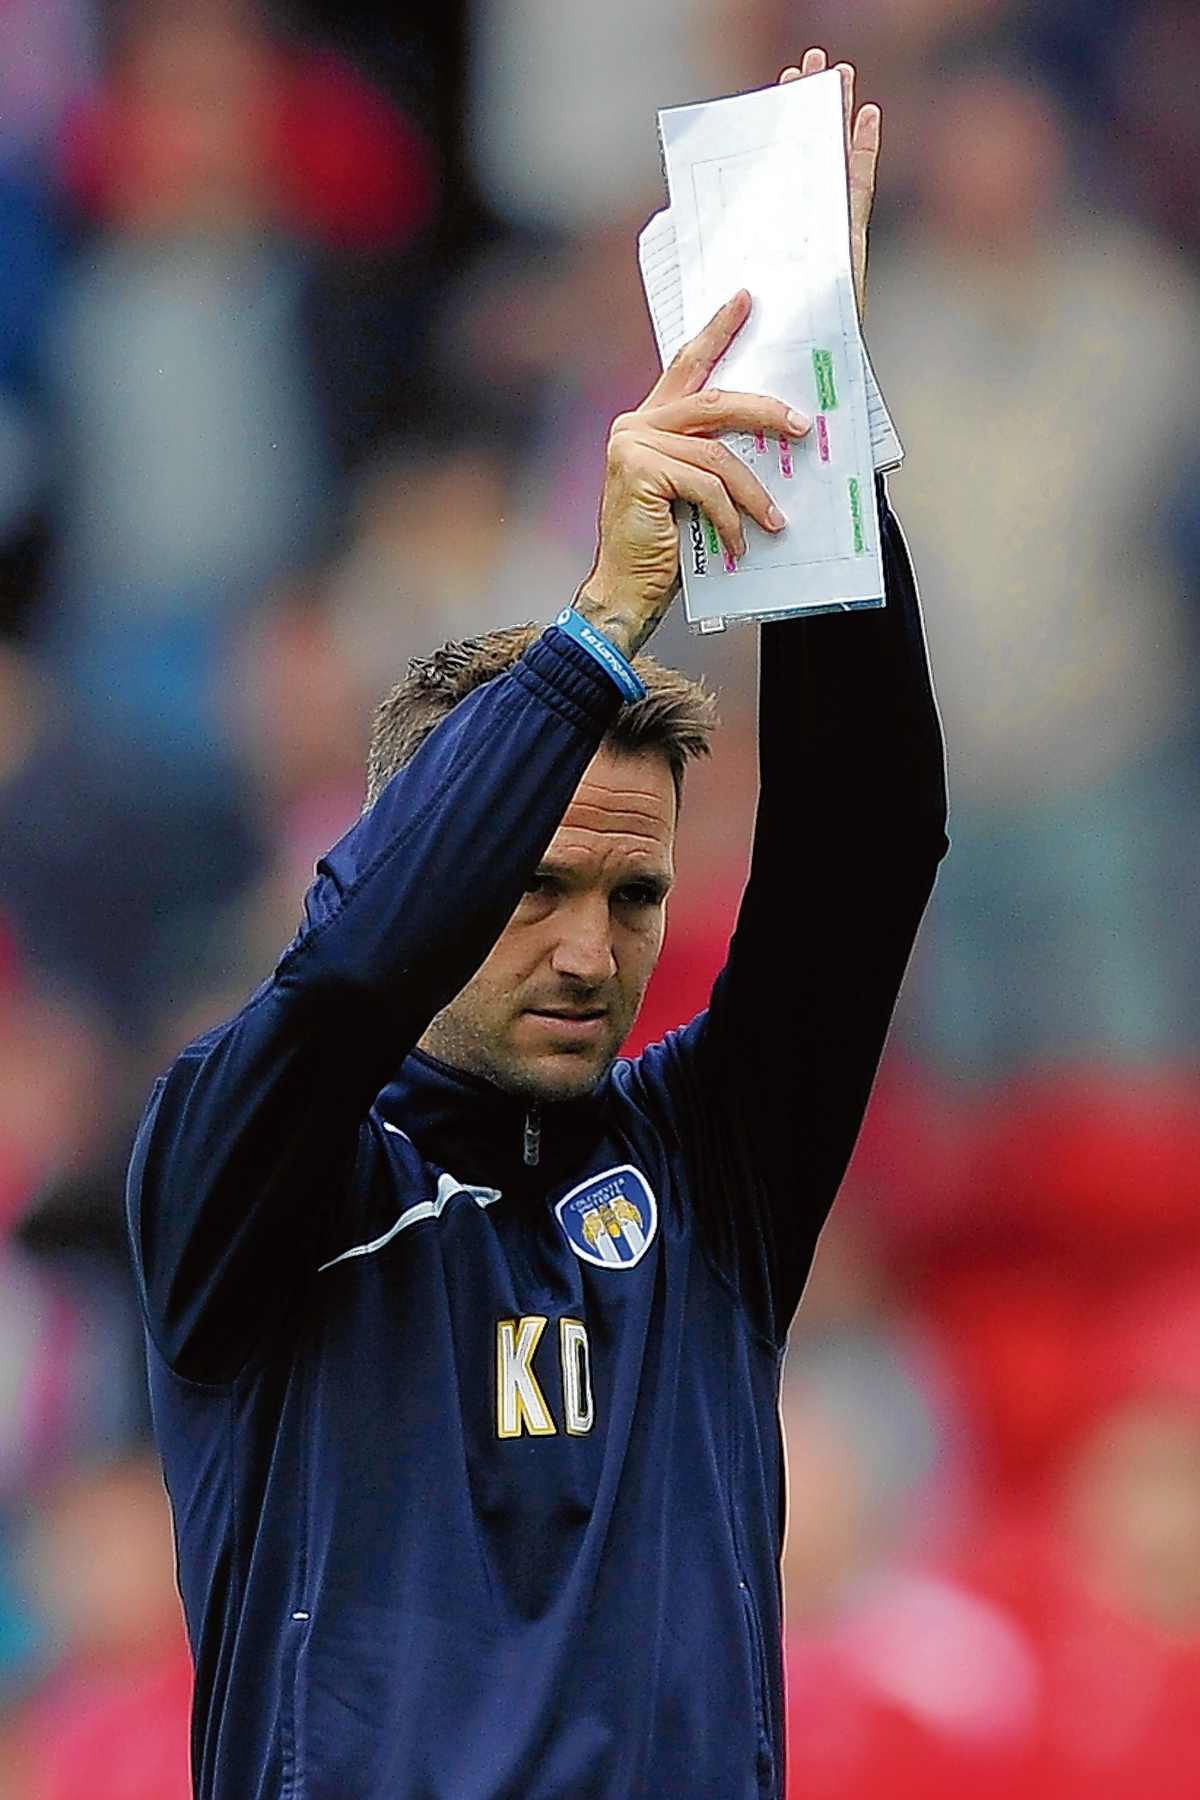 Coaching brief - Karl Duguid is enjoying his role as Colchester United player-coach but would dearly love to play for the U's again one day. Picture: WARREN PAGE